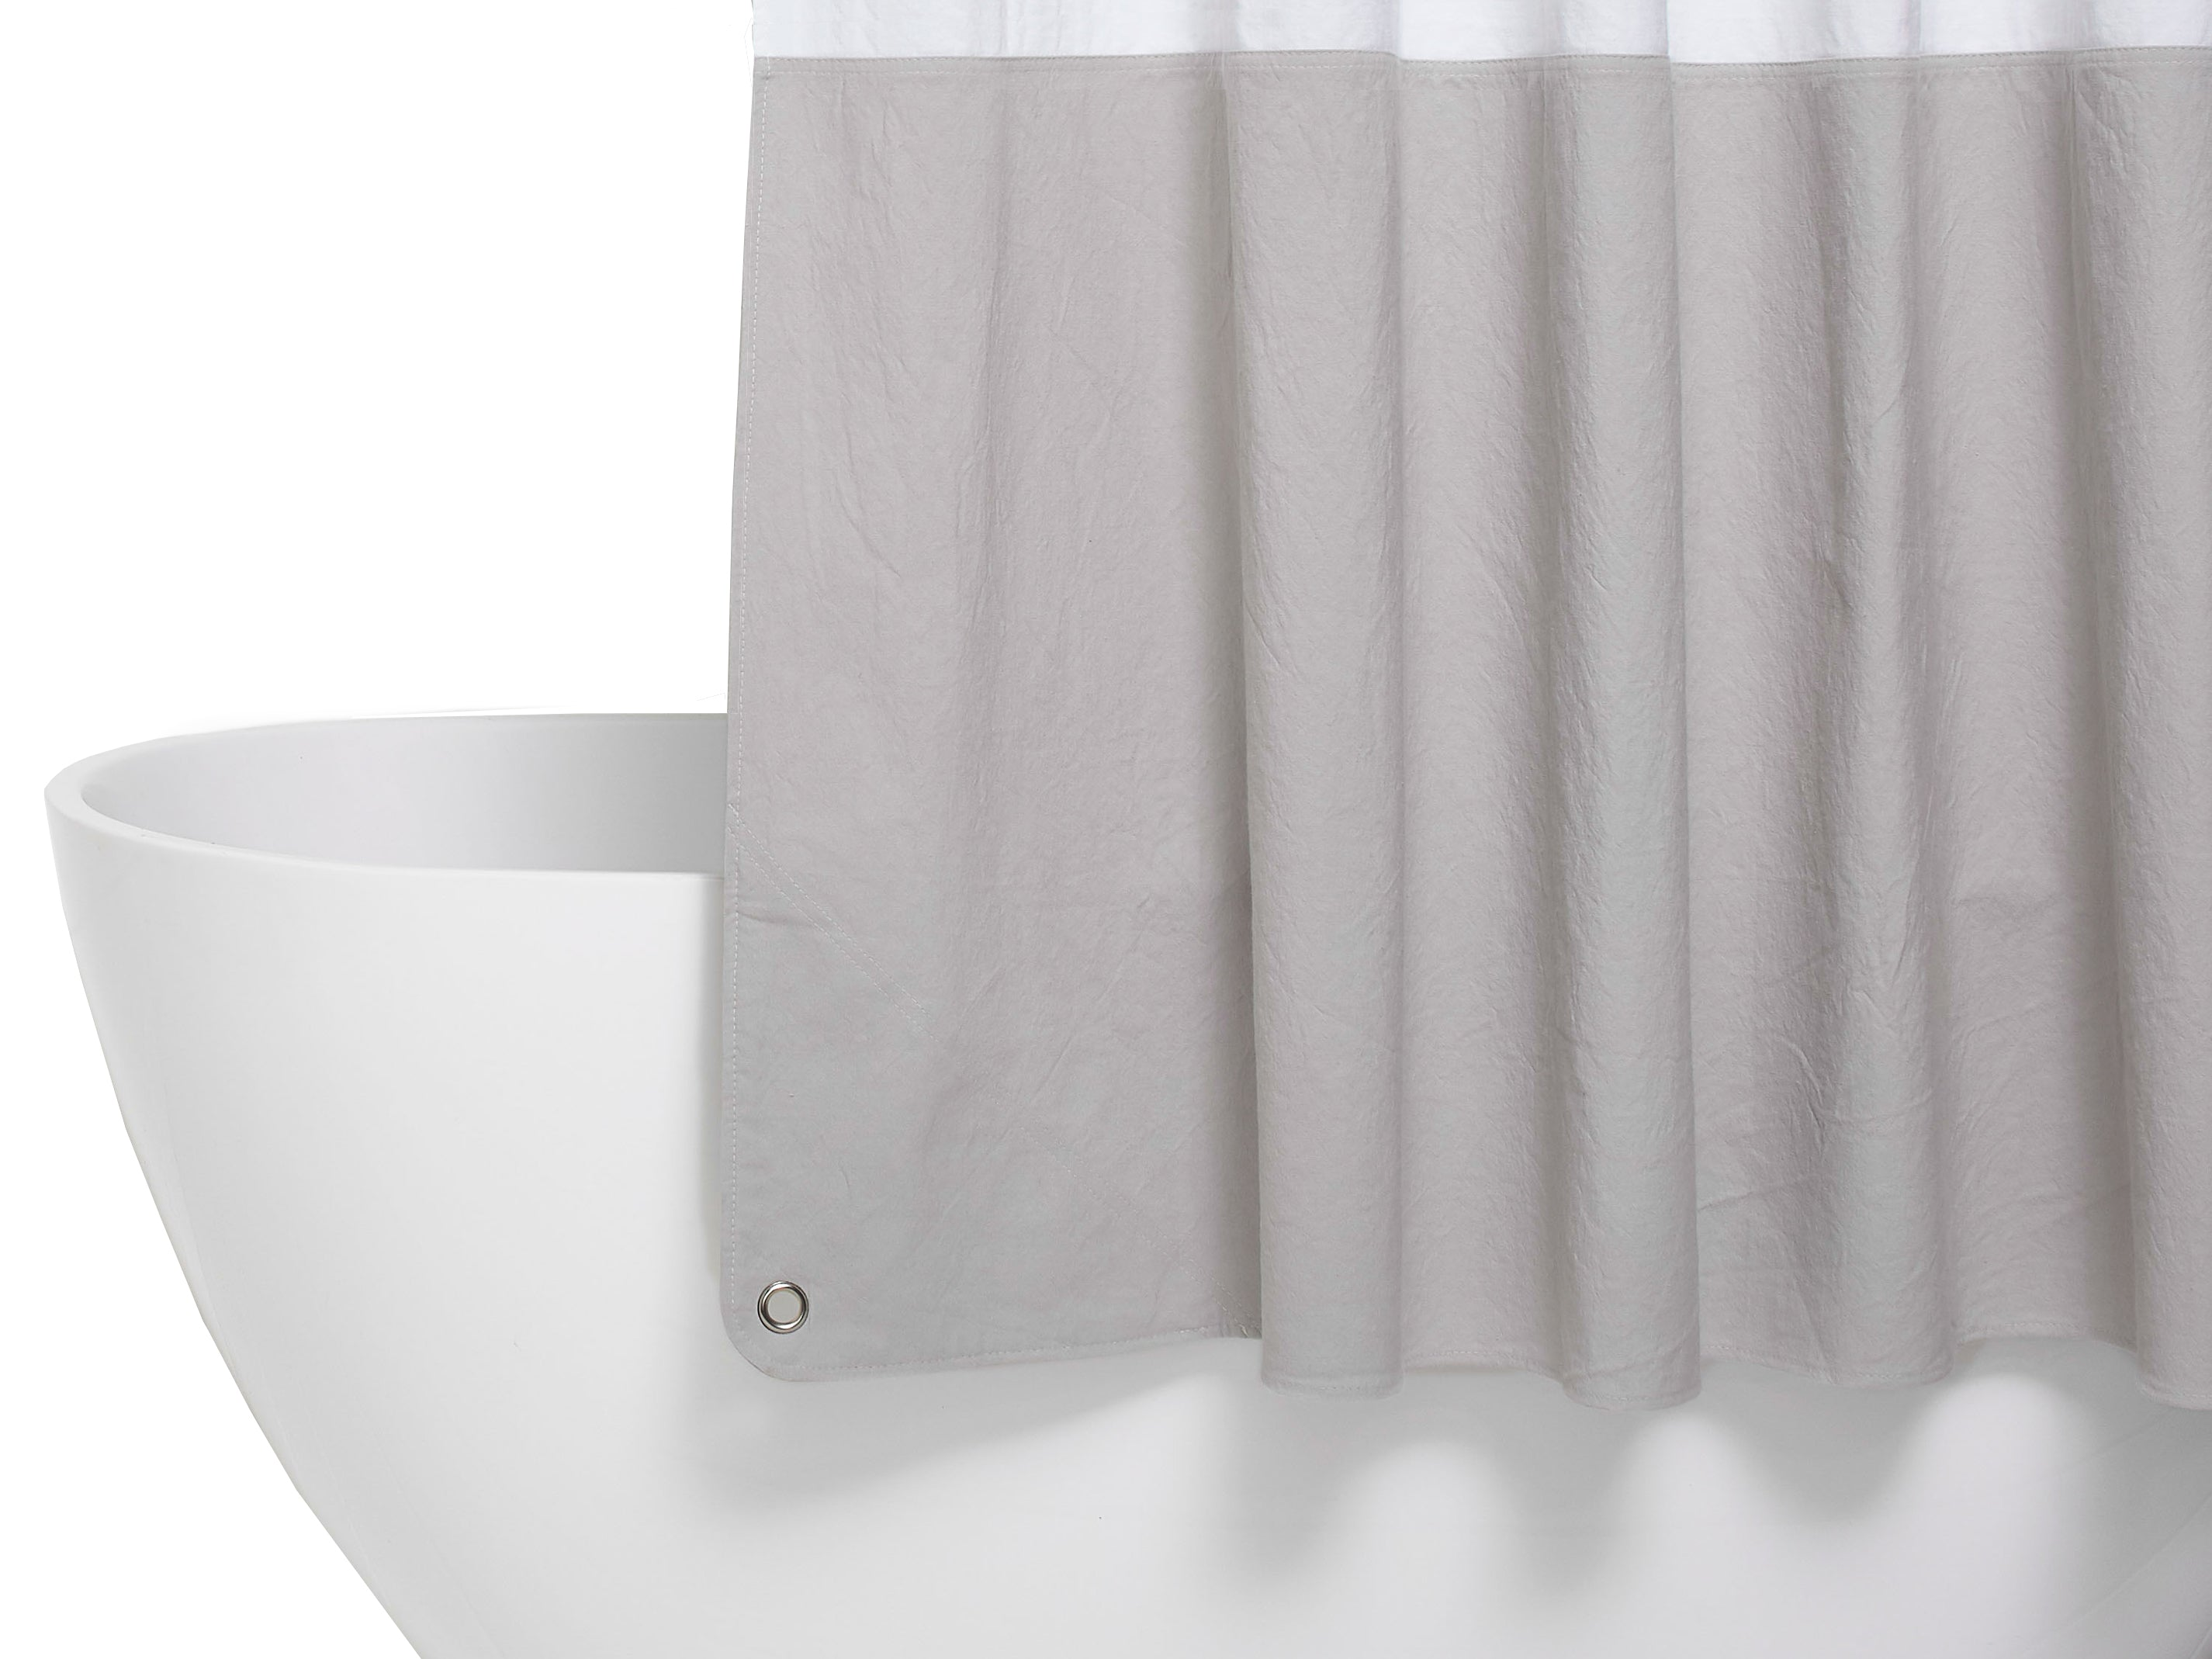 com bathroom home shower lush darla kitchen amazon dp inch white by curtain decor